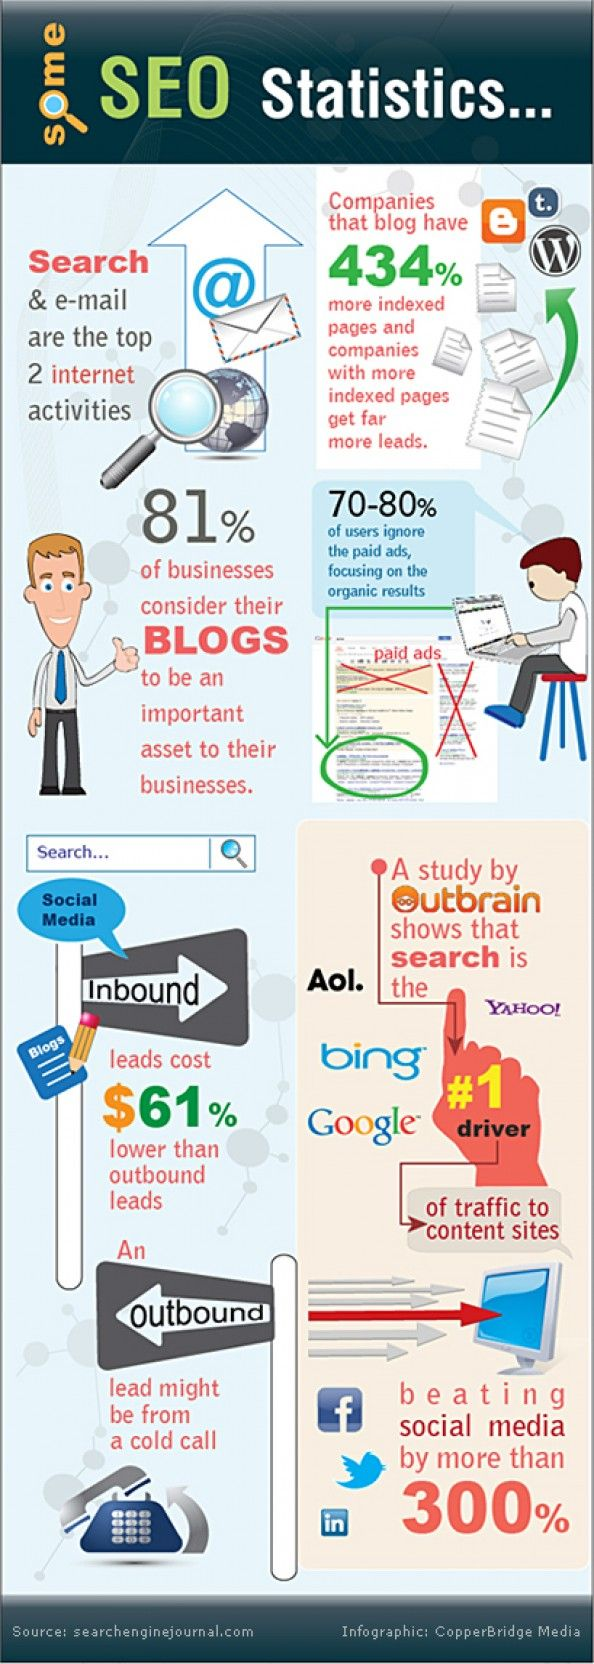 Online business owners have a laser vision for sales and leads. http://fleetheratrace.blogspot.co.uk/2015/02/top-20-seo-tips-and-tricks-for-google.html #seo #SEOtips tips and tricks #infographic search engine optimization optimisation. (What Would Happen If You Had Access to The Same Blogging Platform That Everyday People Like You Are Using to Go From Zero to Profit in 21 Days or Less? ~ Click here> http://www.businessbuzz.ws)